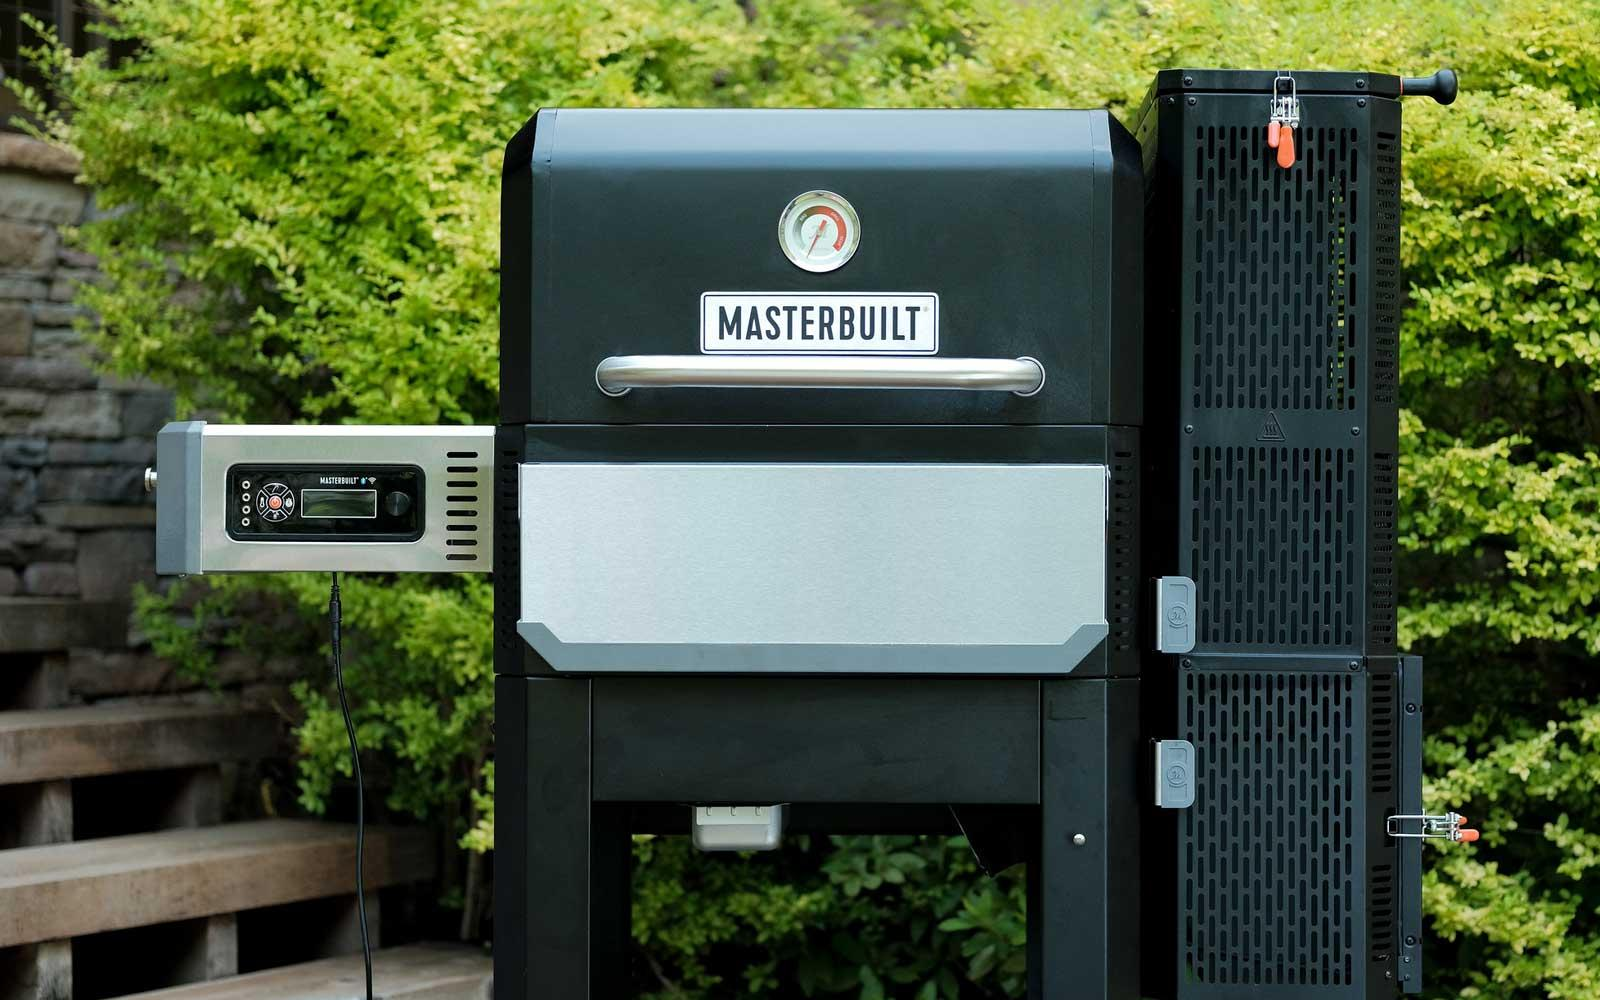 Masterbuilt's latest Gravity Series smart grill comes with a griddle insert   Engadget